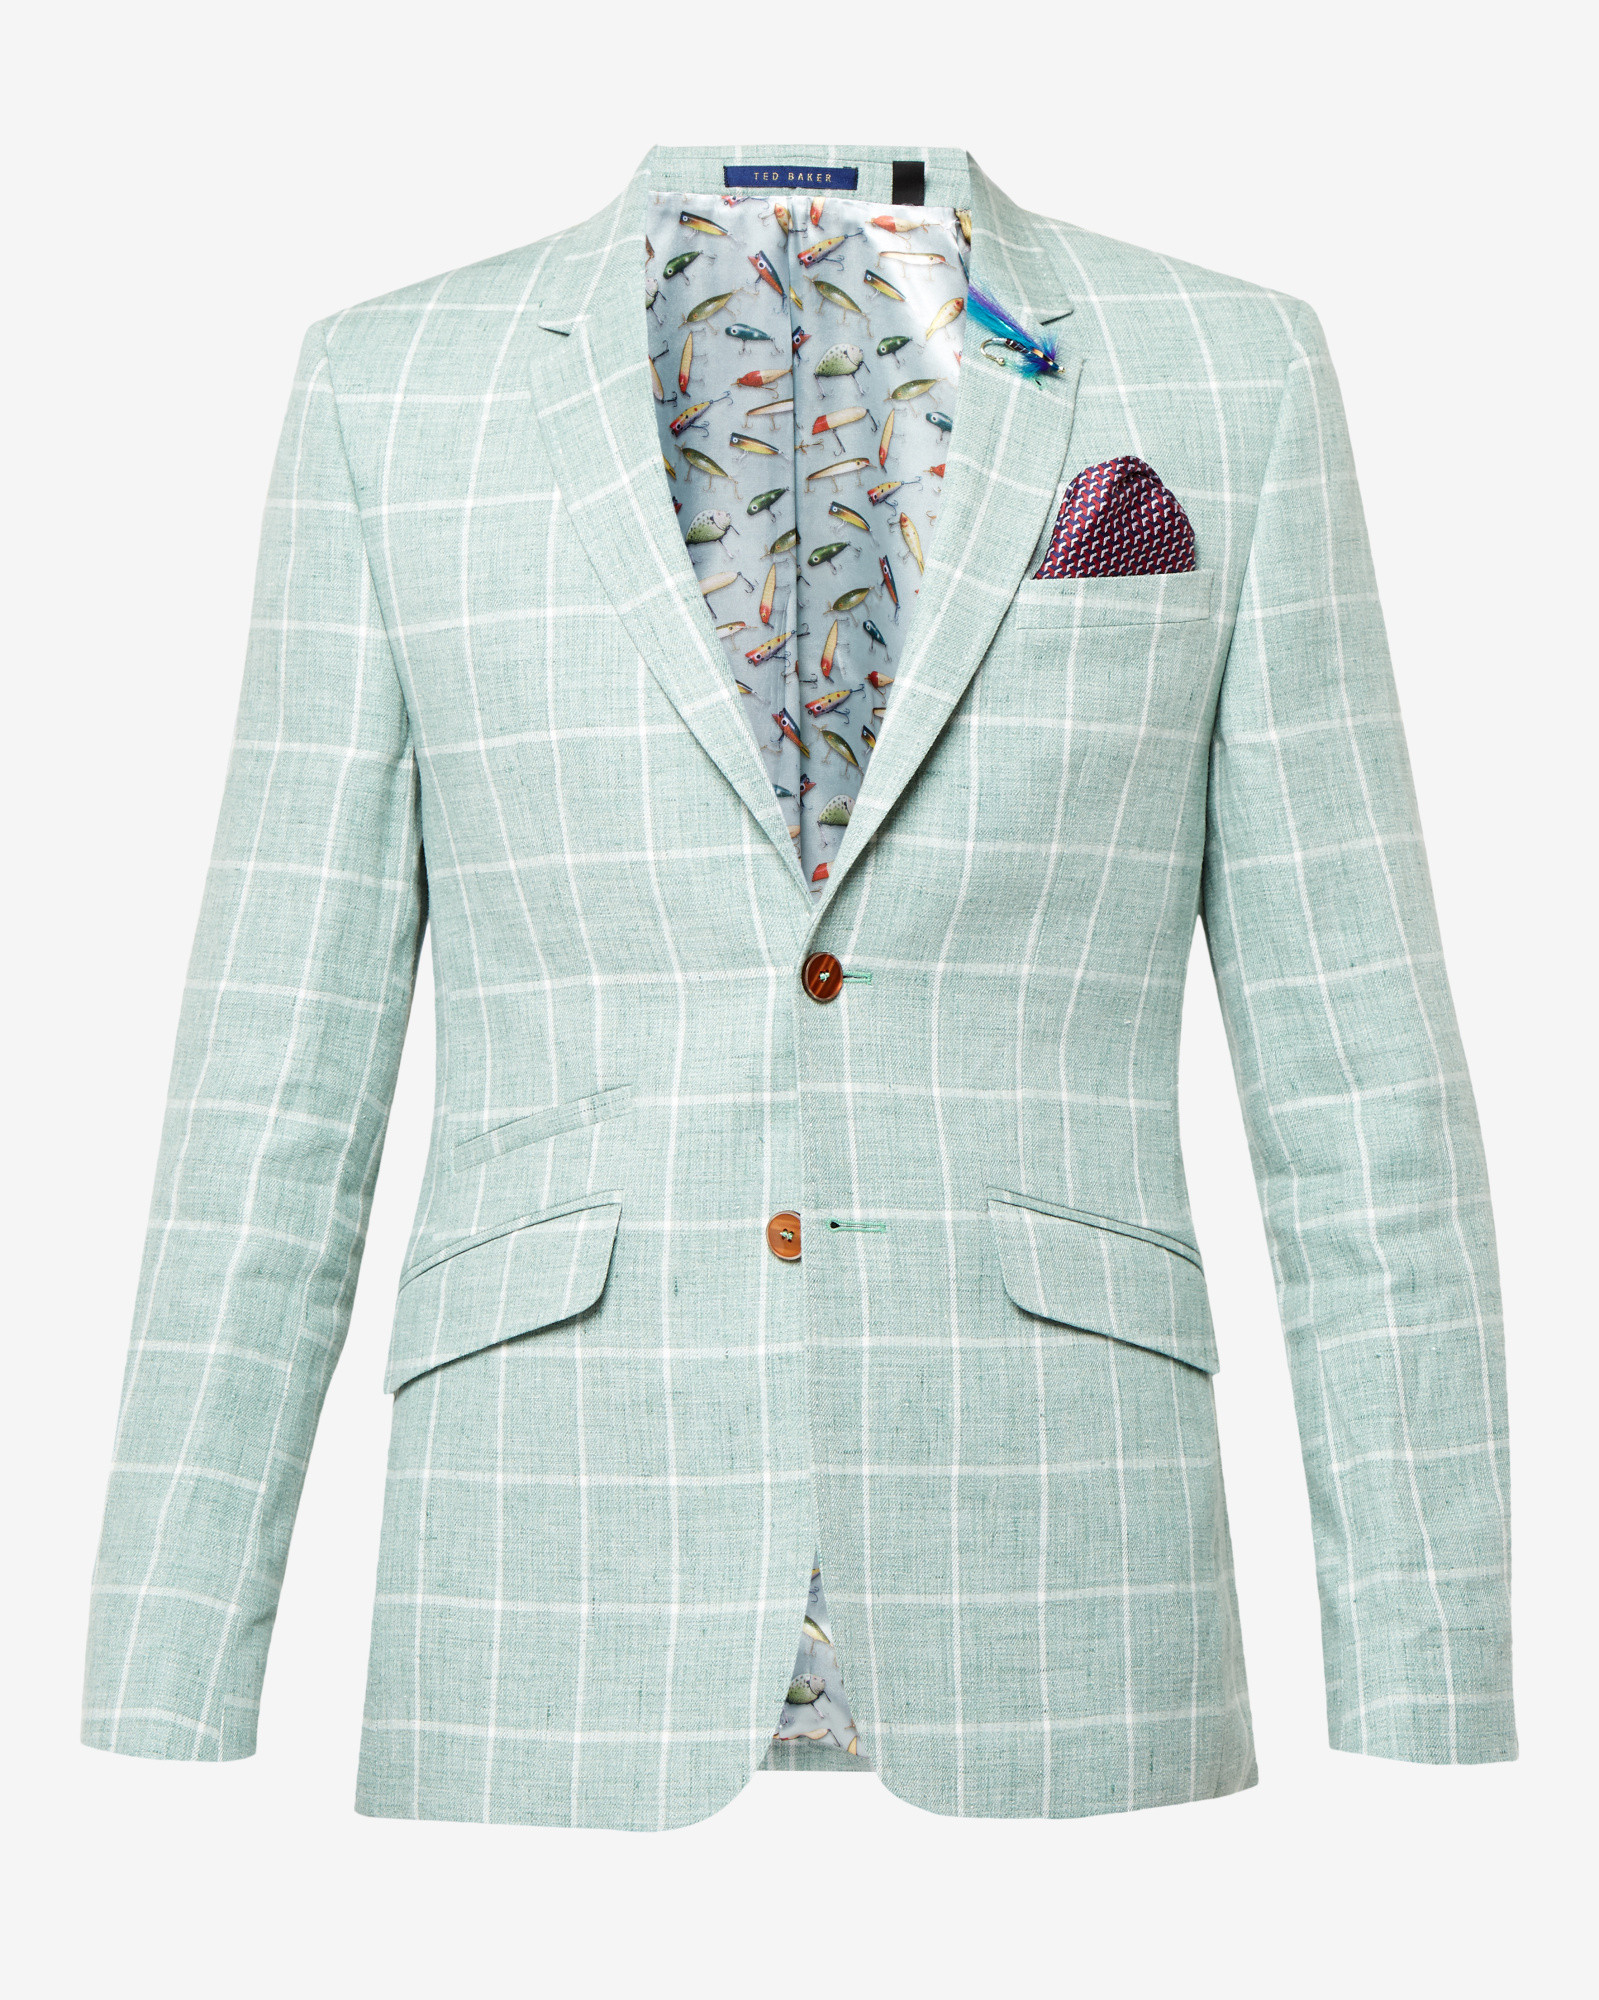 e9afb6864 Lyst - Ted Baker Tight Lines Checked Linen Jacket in Blue for Men